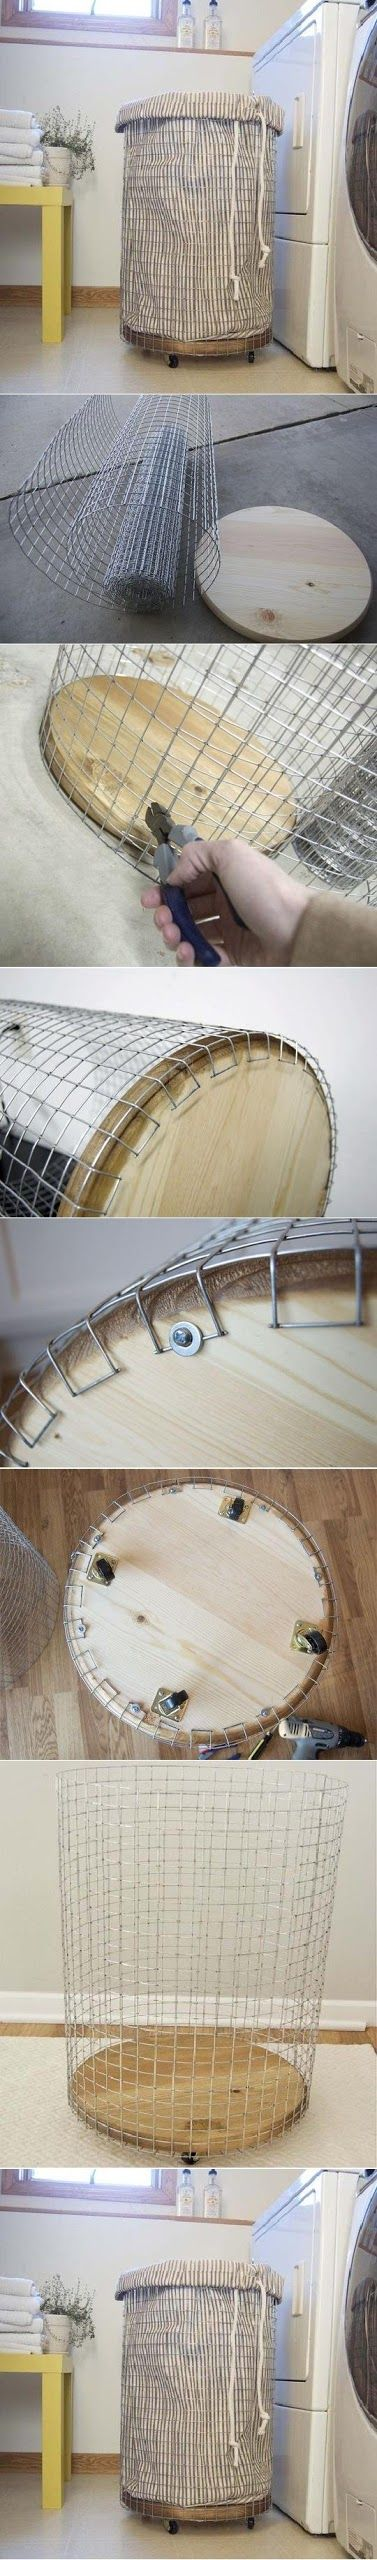 DIY : How To Make a Laundry Basket - Como armar un canasto para la ropa.